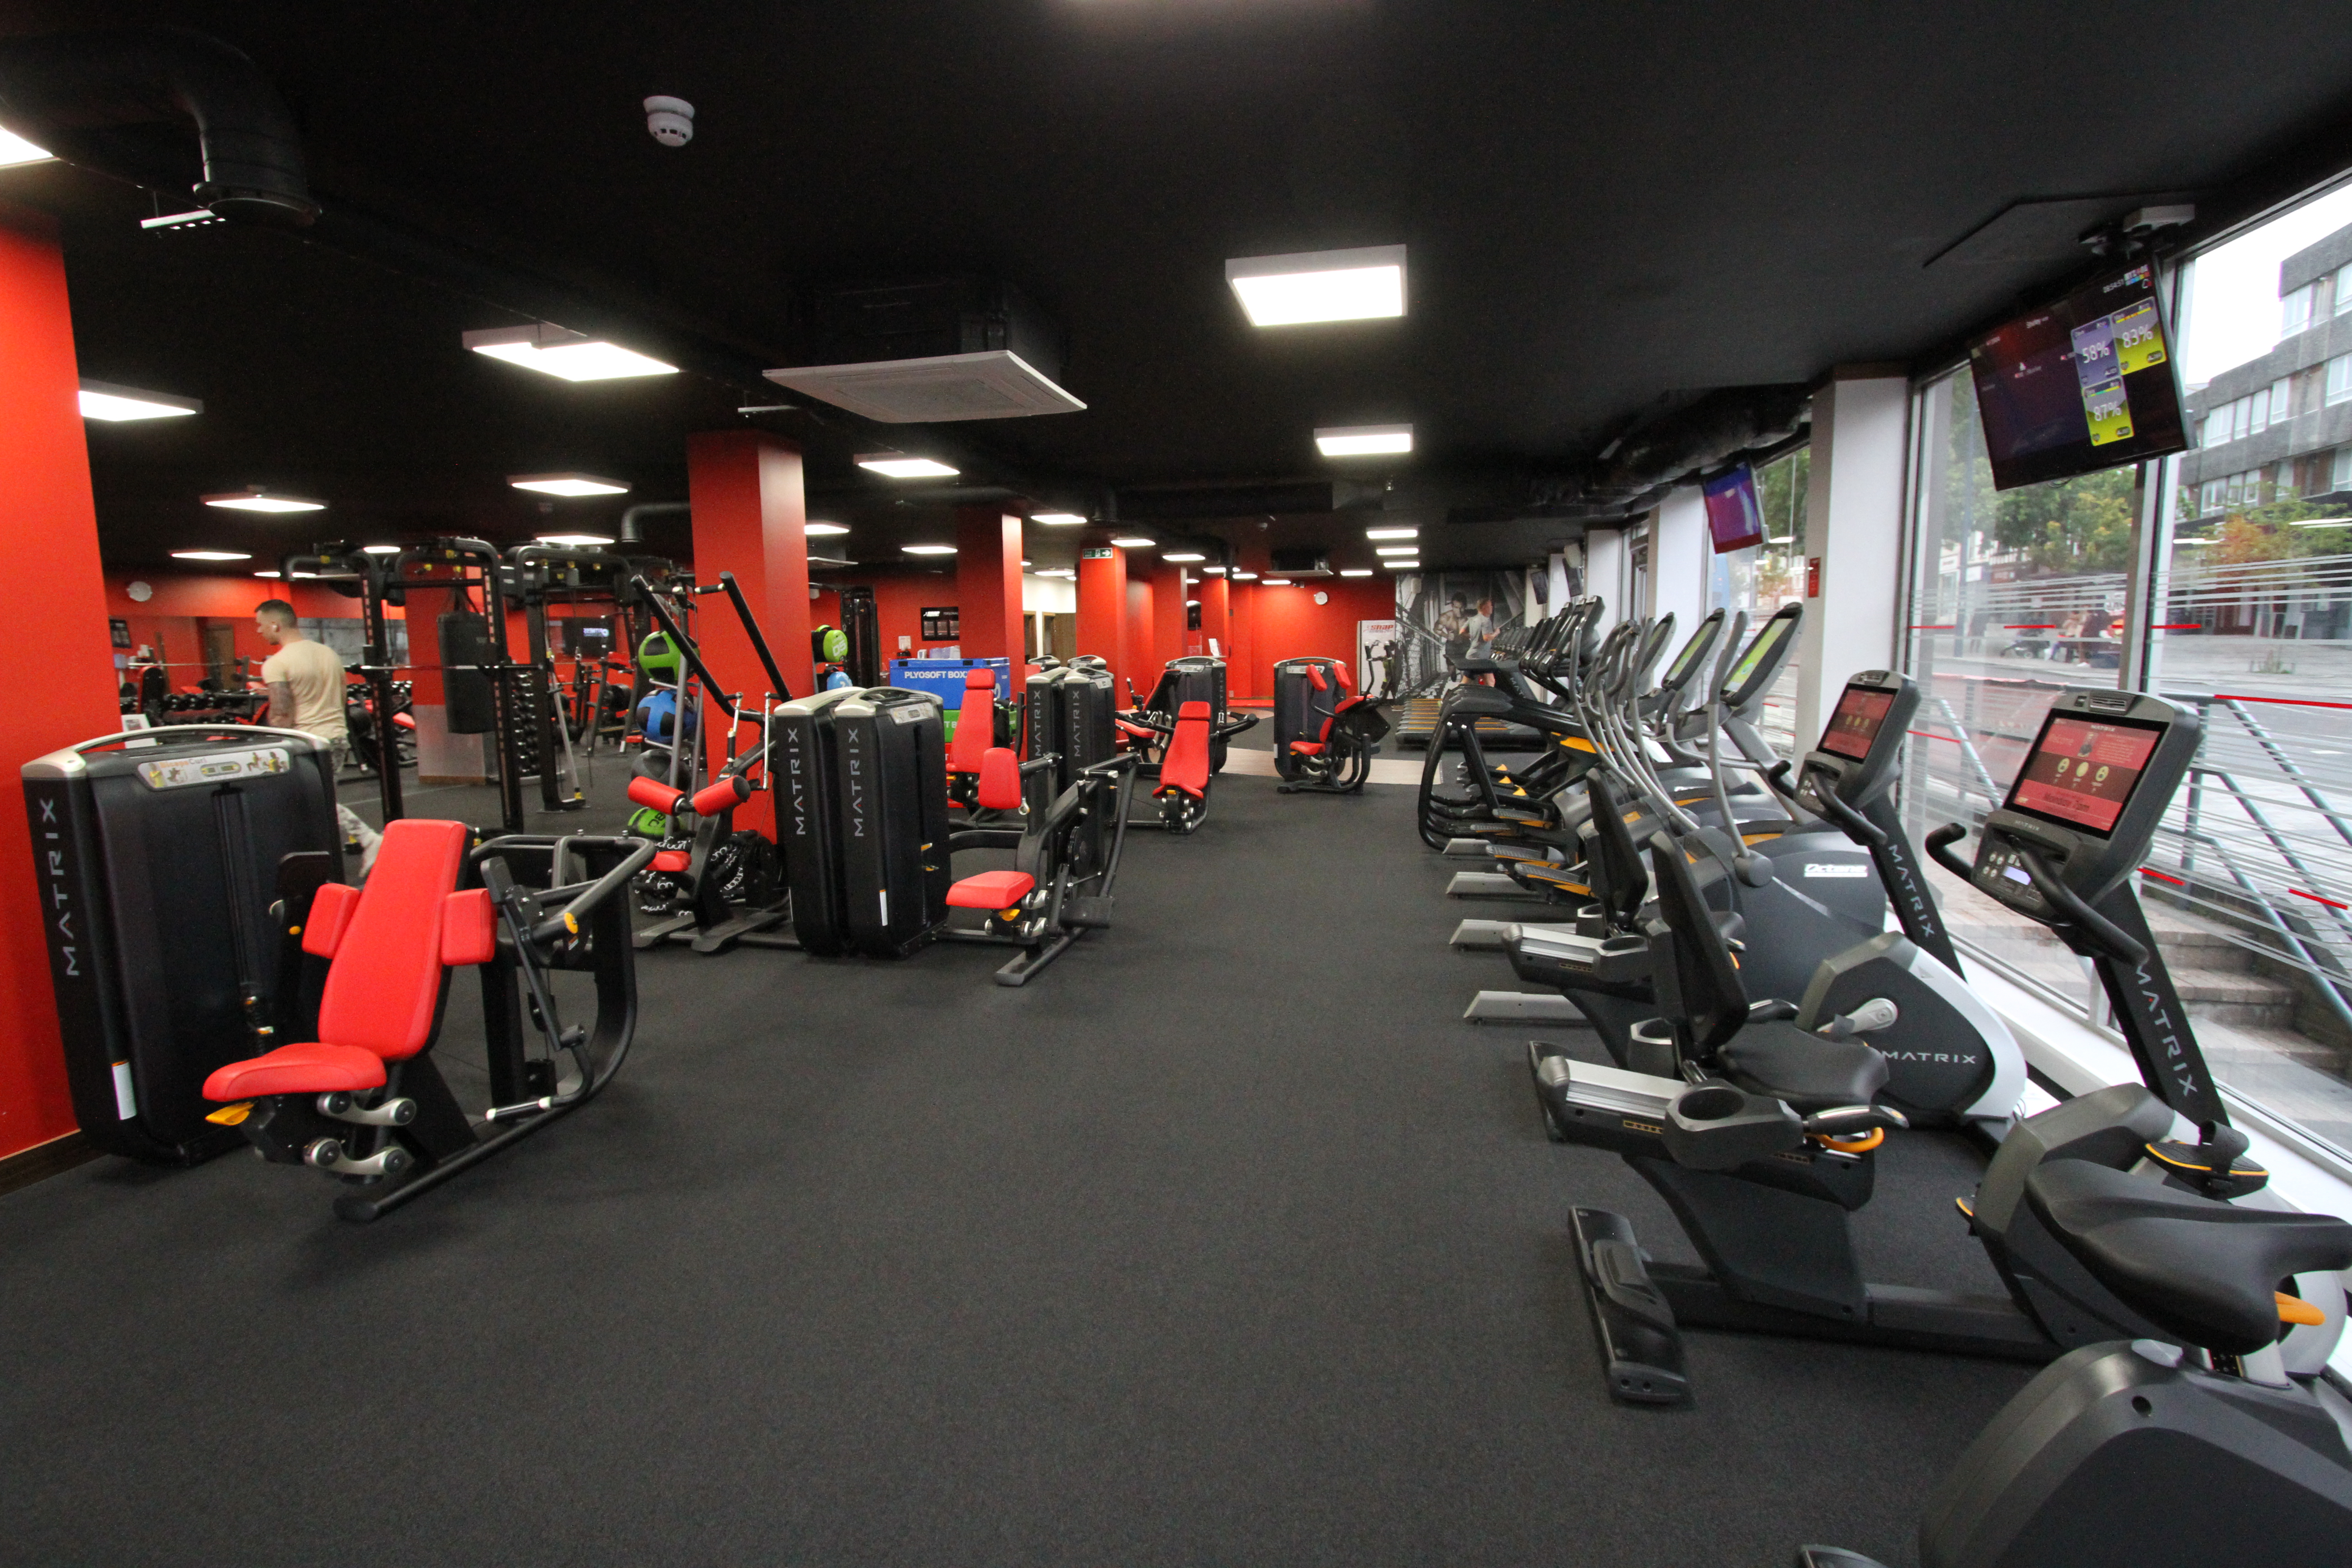 High Street Gym Equipment Best Equipment In The World